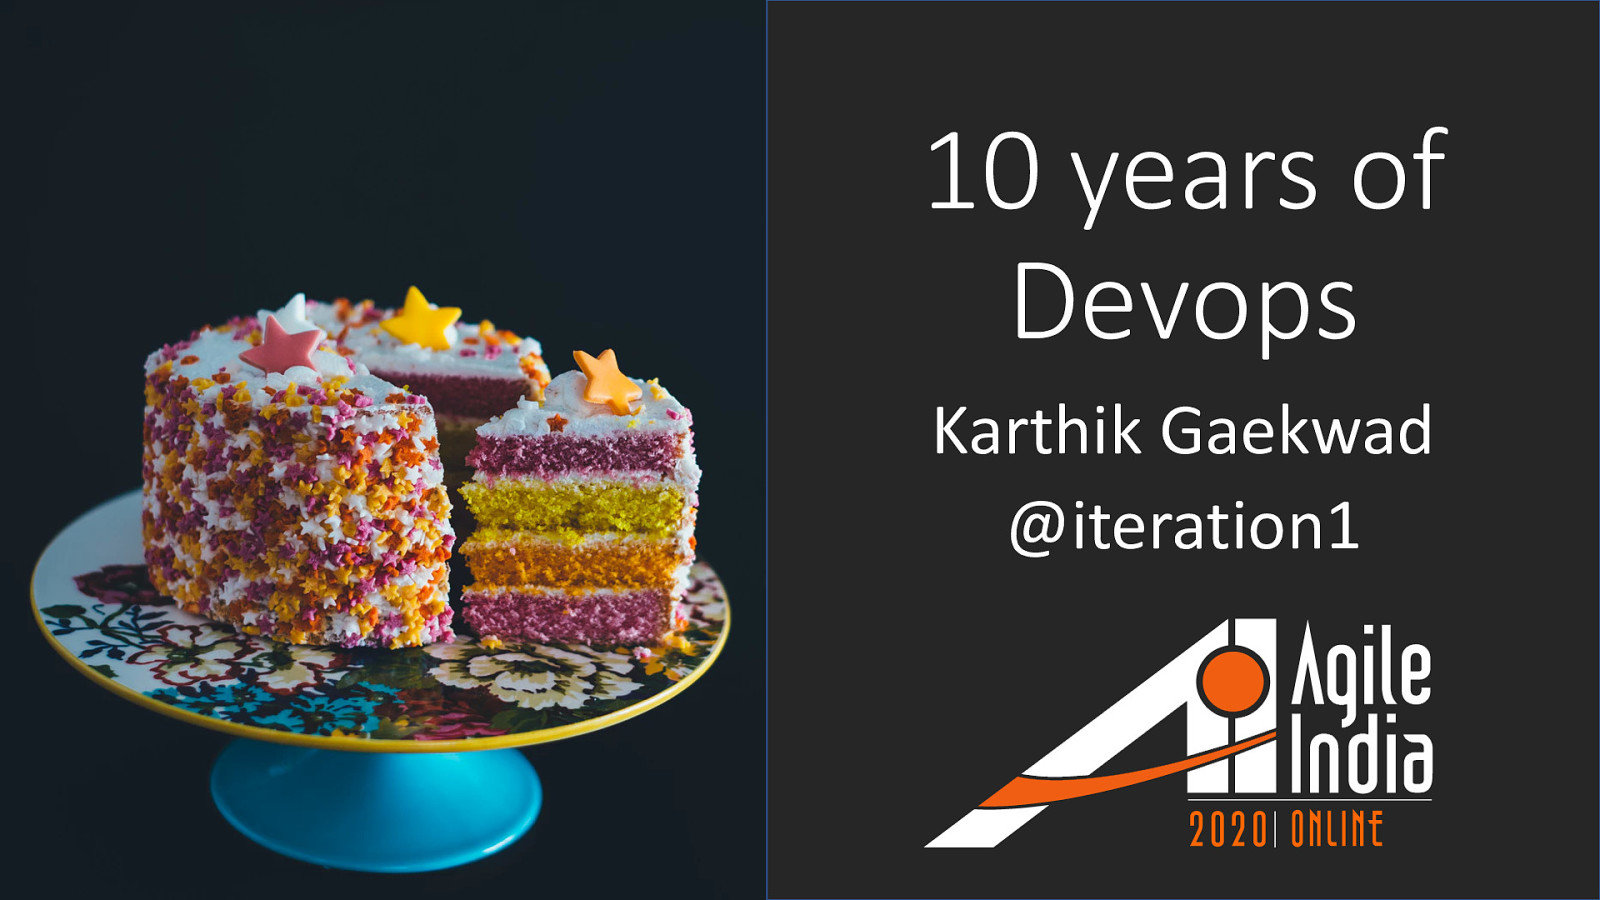 10 years of DevOps- Where are we today?